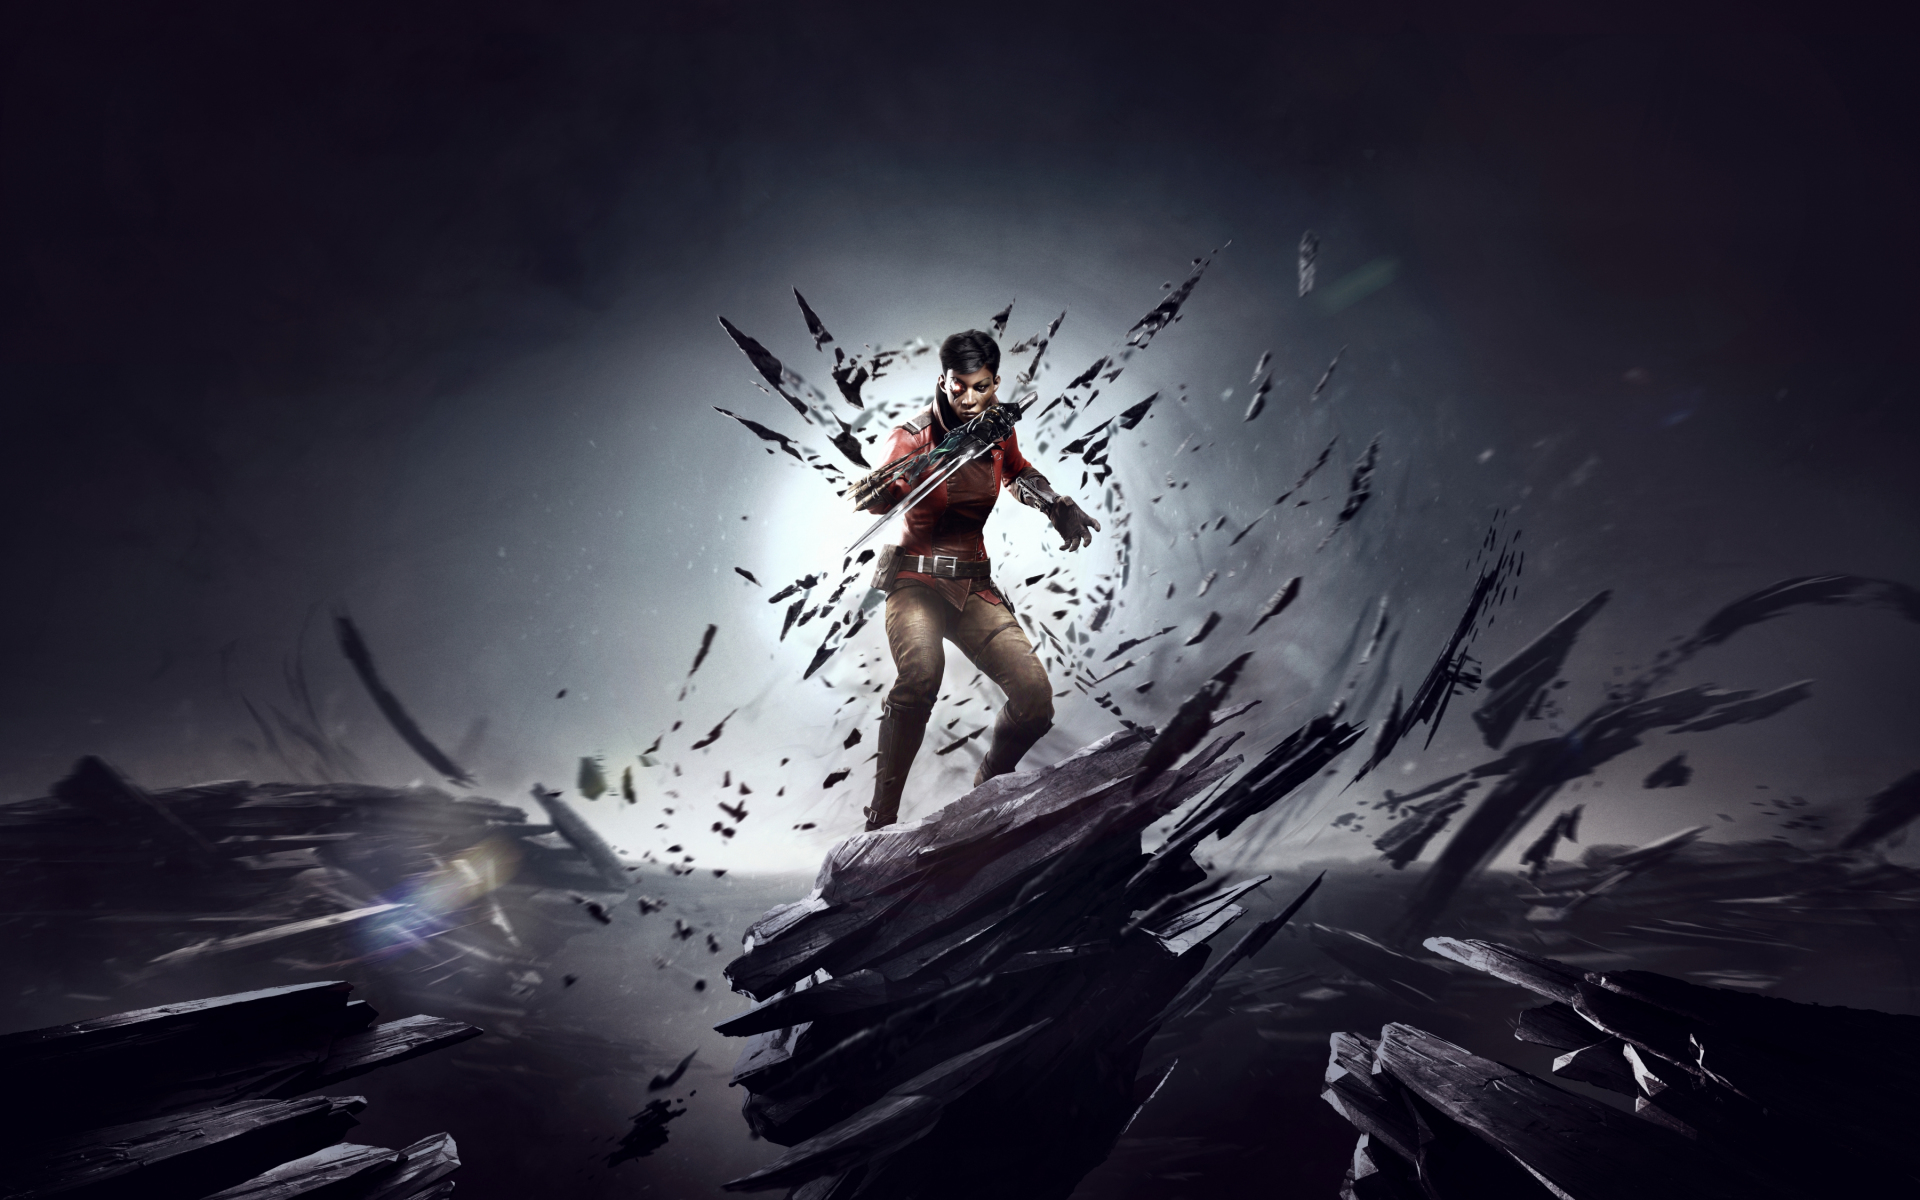 1920x1200 wallpaper Dishonored: Death Of The Outsider, 2017 game, video game